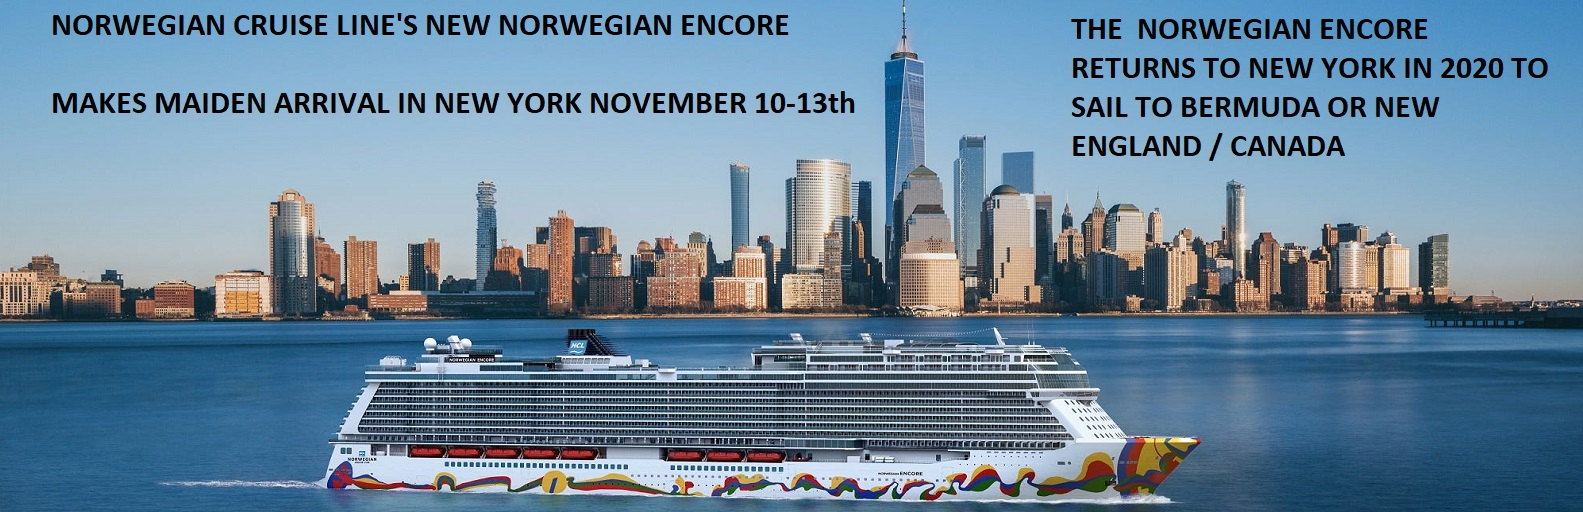 Fresh From Meyer Werft Shipyard The Norwegian Encore to Call at New York